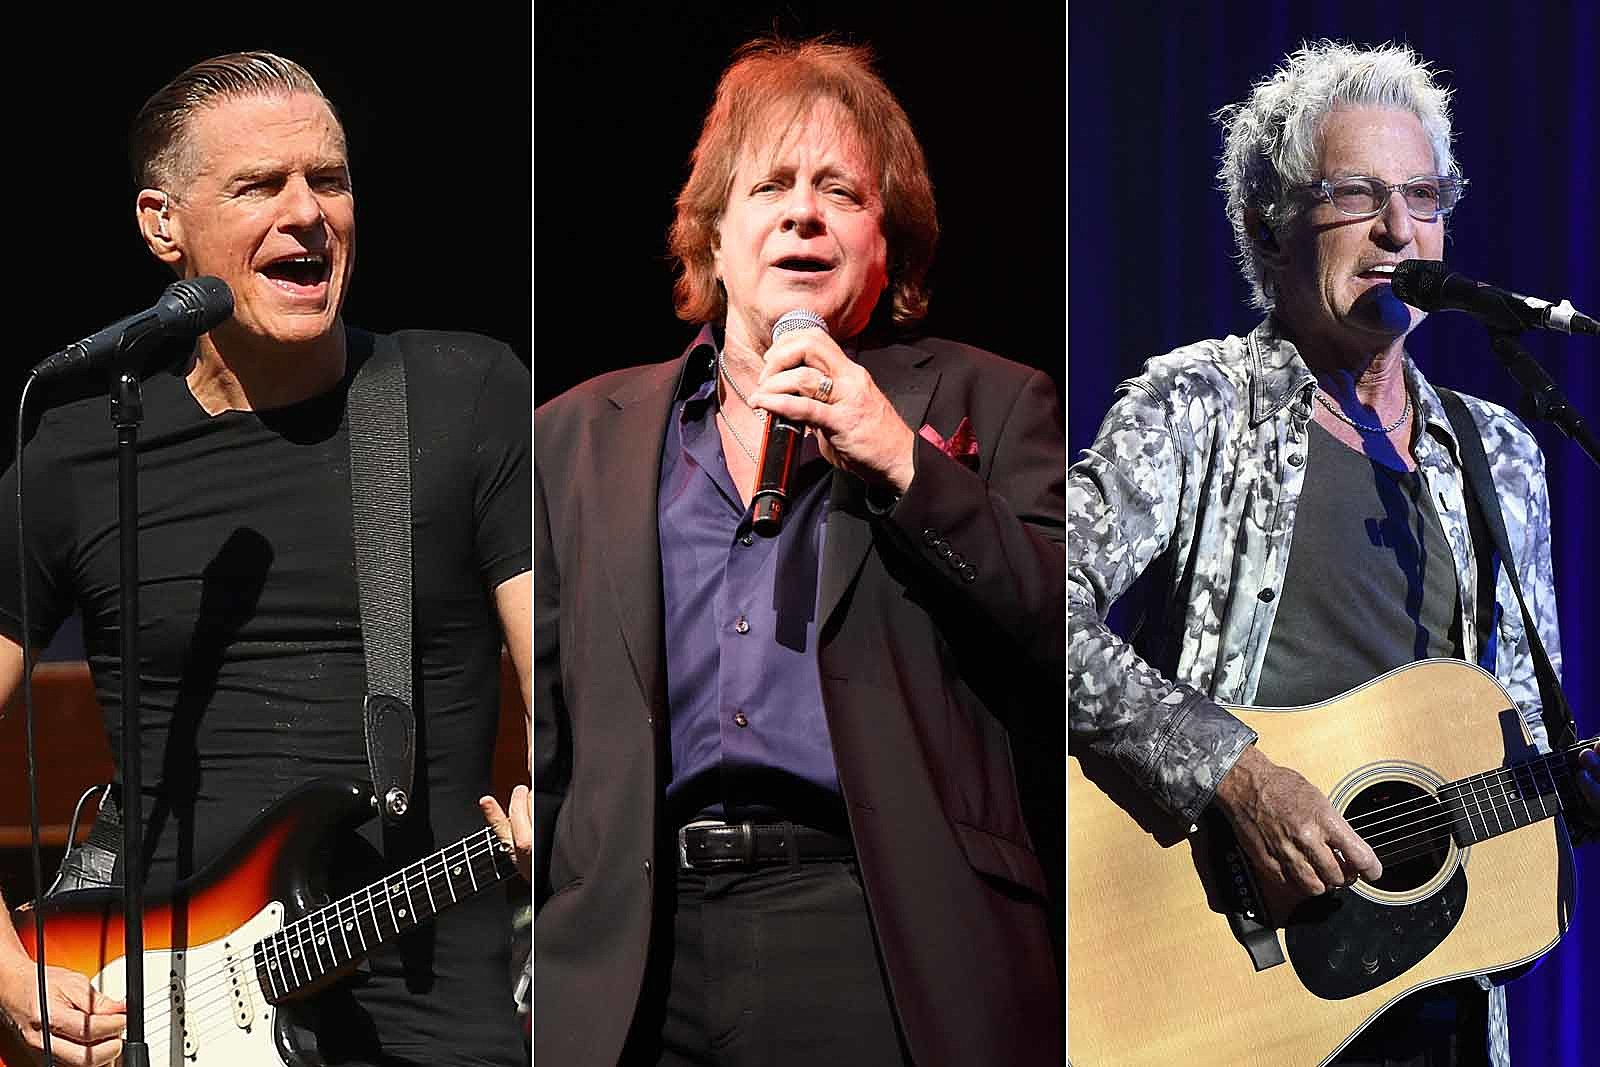 Bryan Adams, REO Speedwagon and More Perform Tributes to Eddie Money